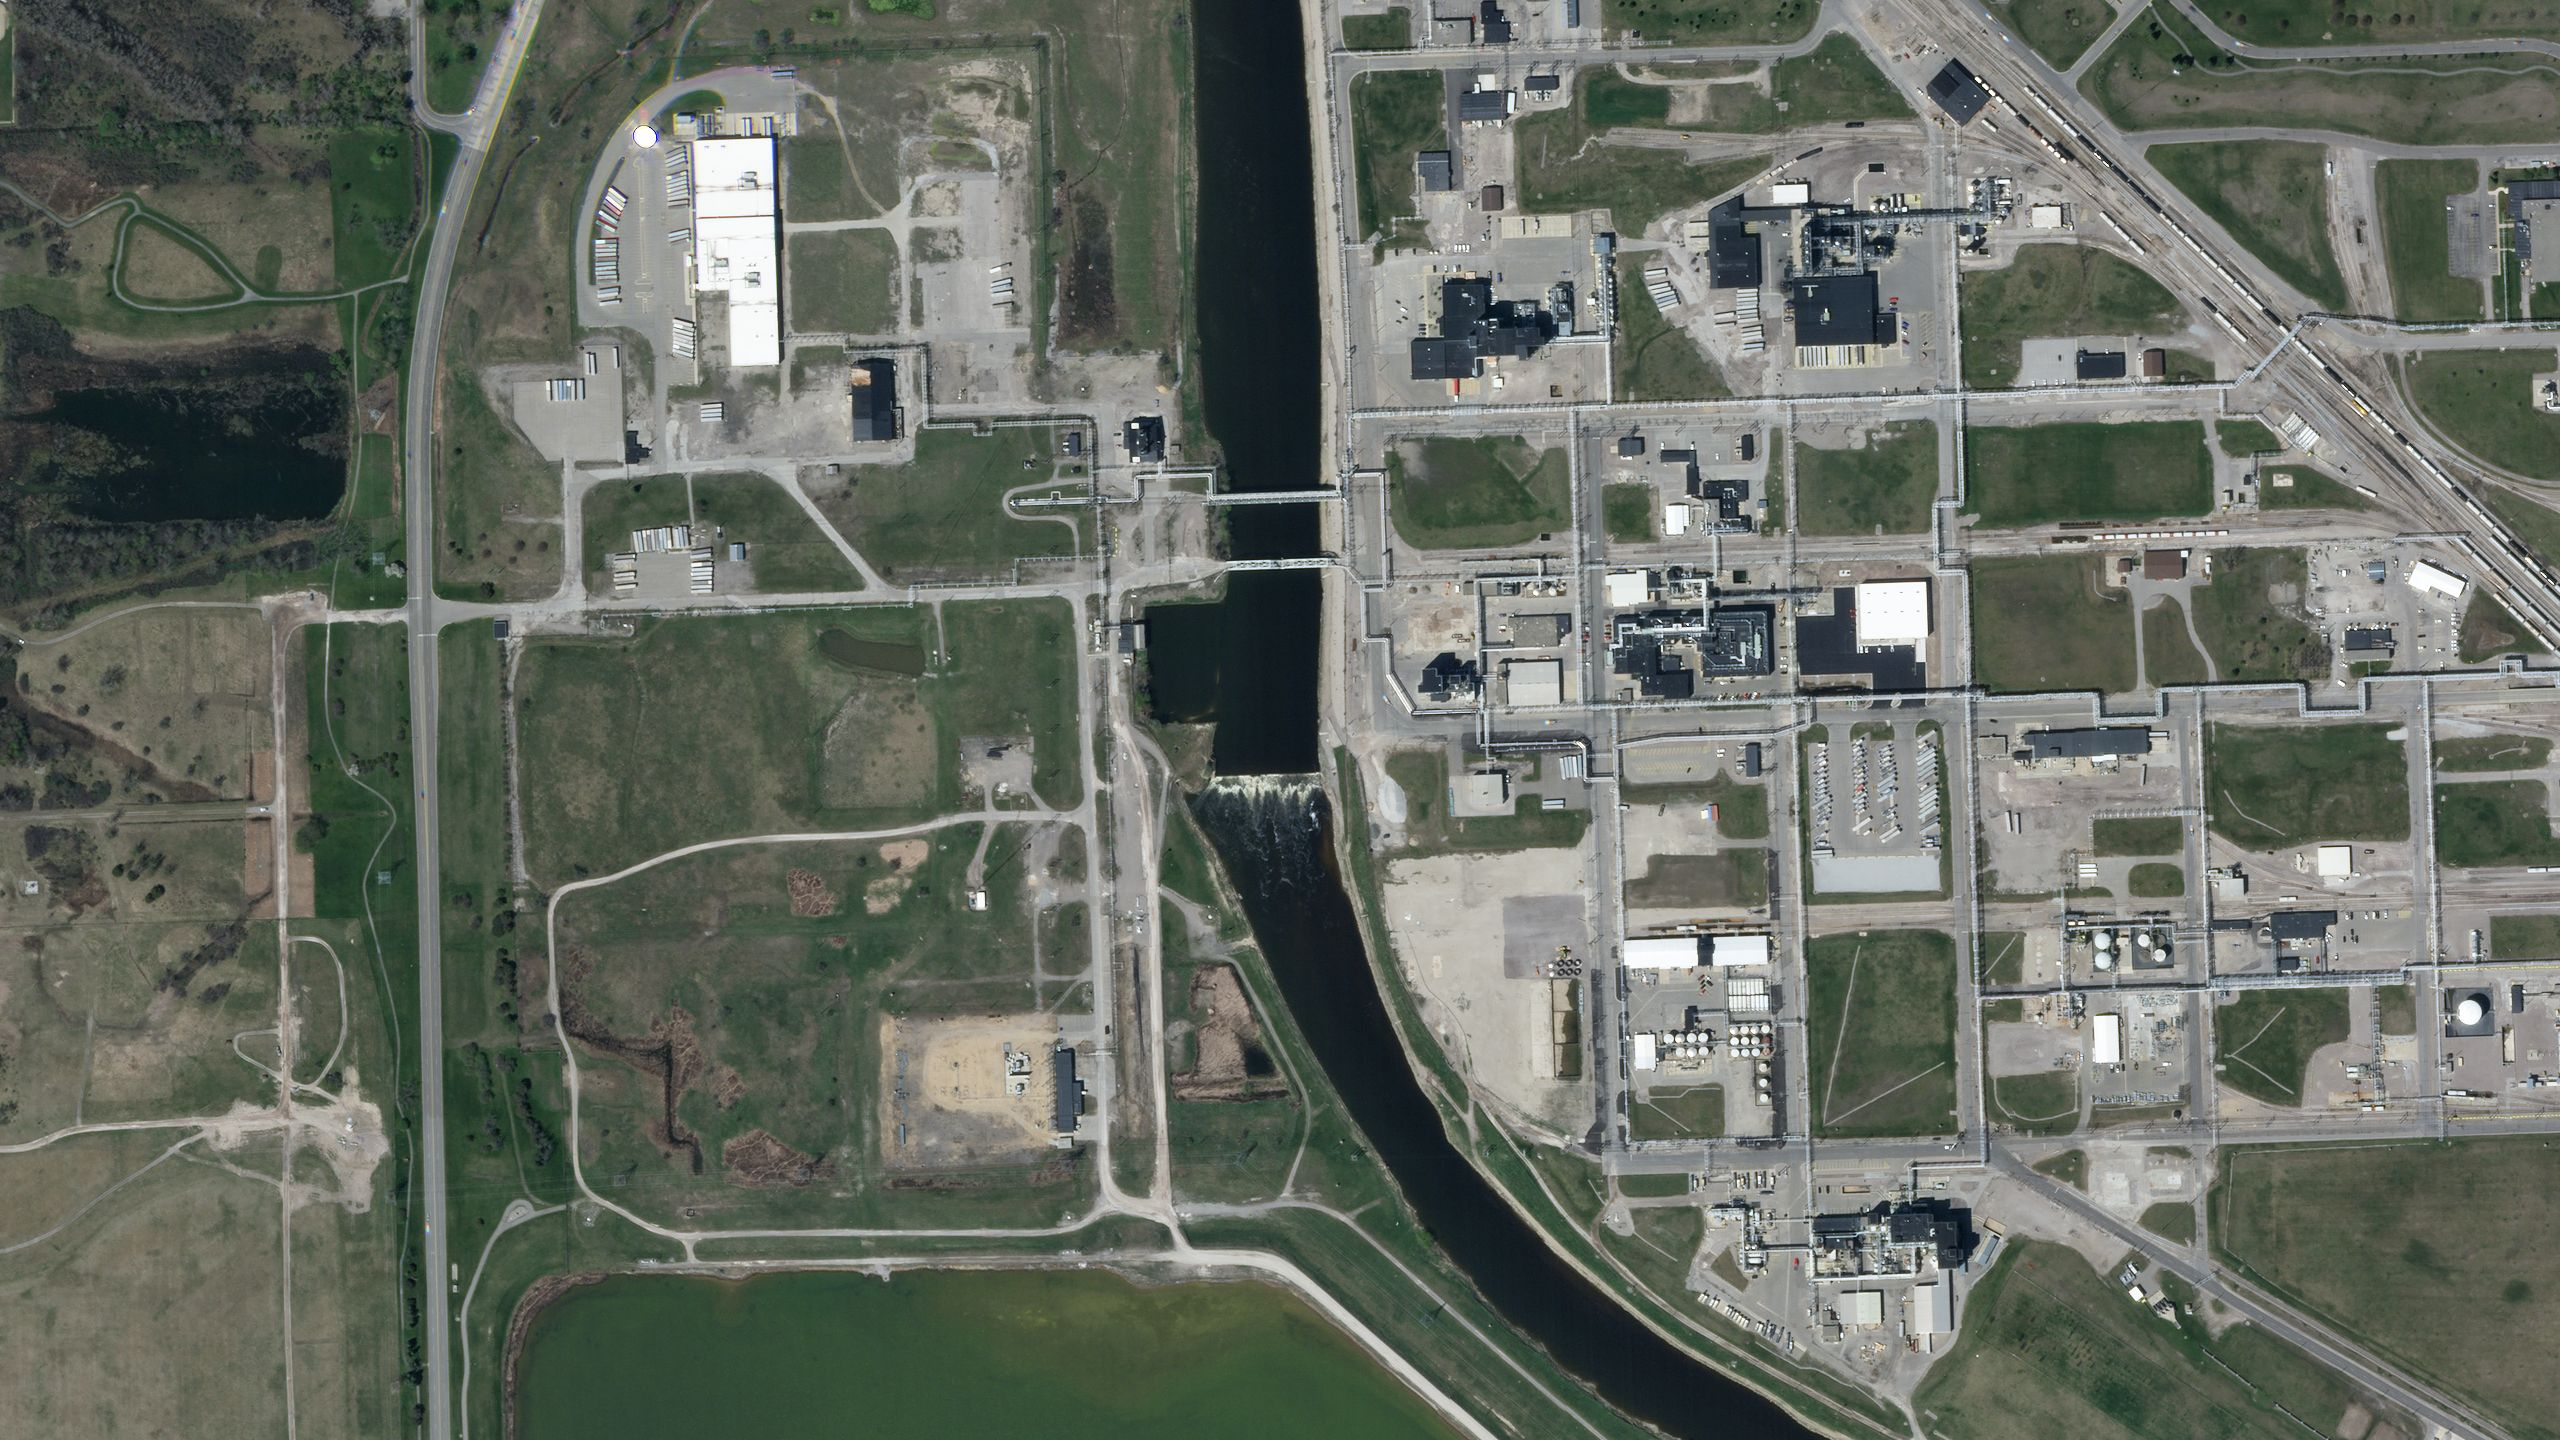 Before the flooding in Midland, Michigan on May 13, 2020 © 2020, Planet Labs Inc. All Rights Reserved.